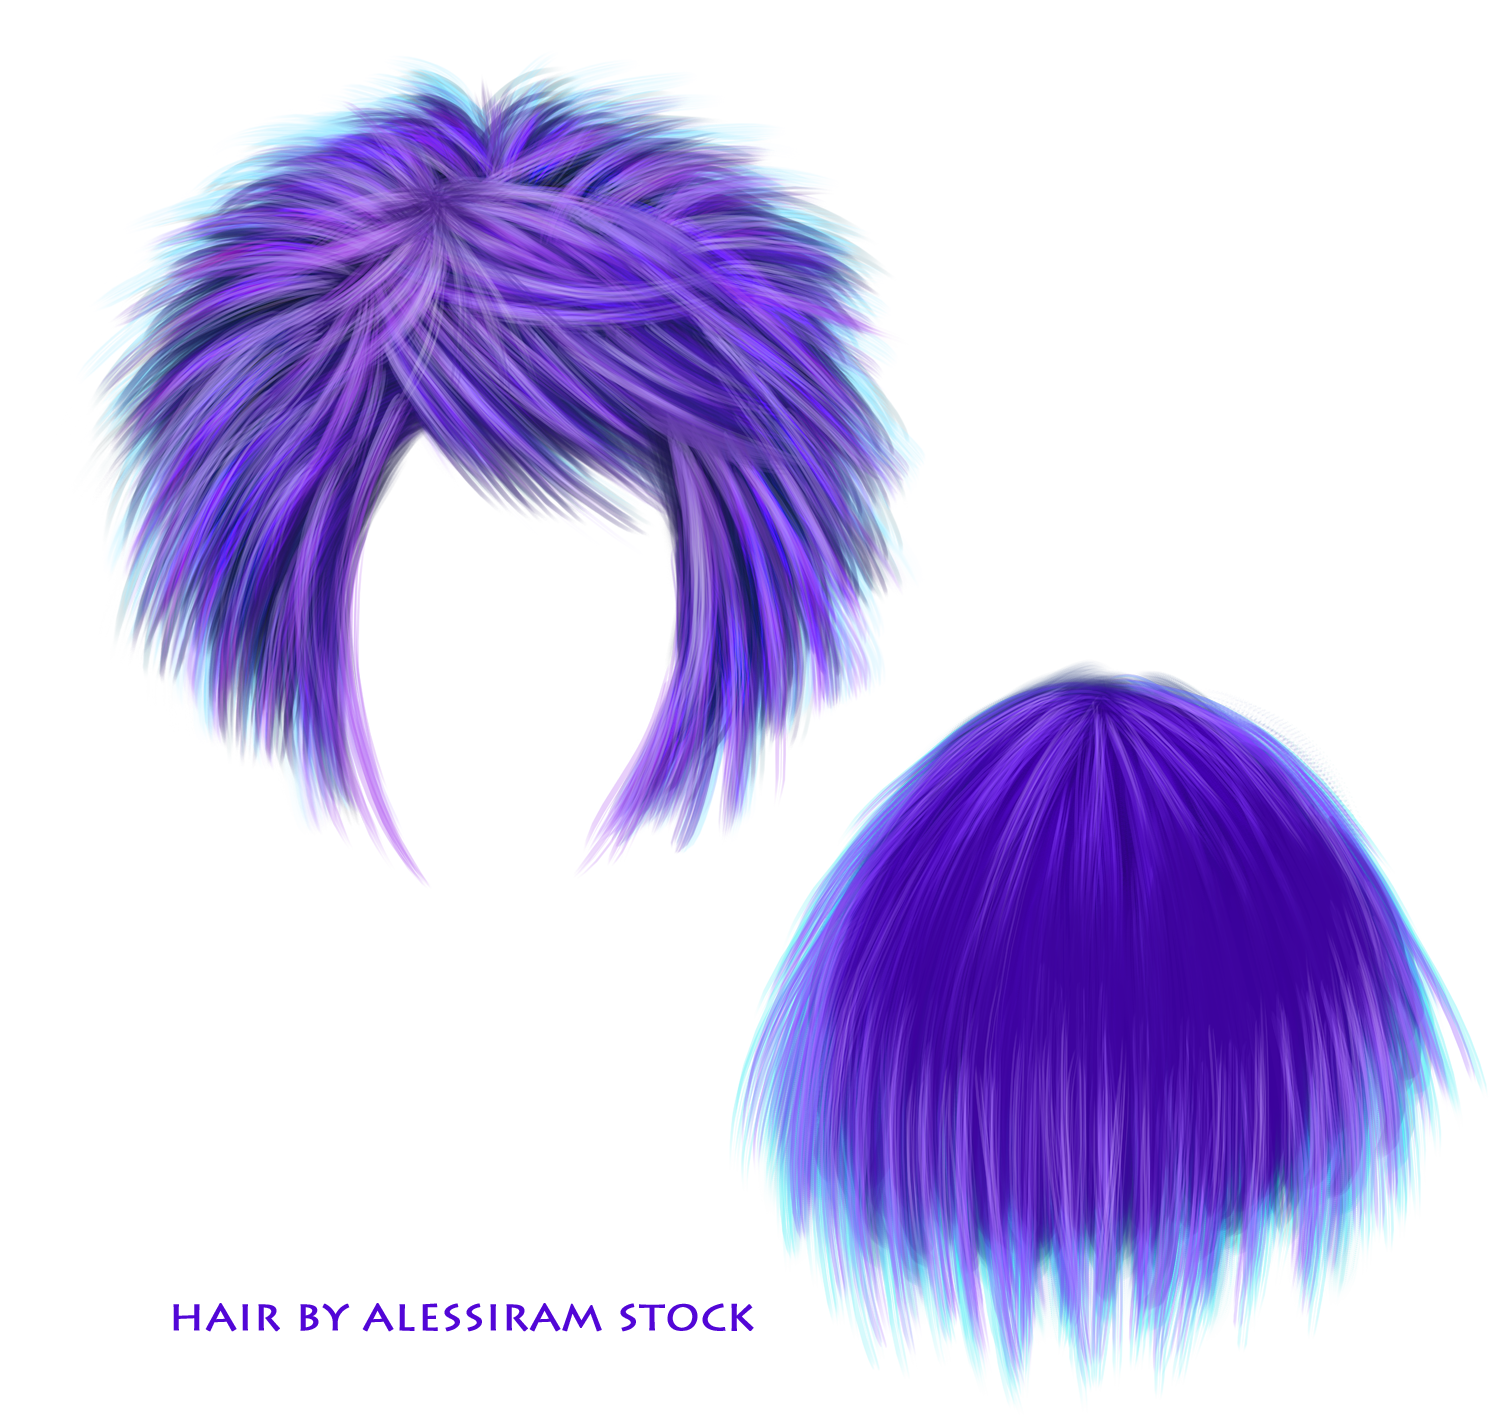 Hairstyle Png : ... : Hairstyle Png , Wig Png , Hair Texture Png , Hair Png Images